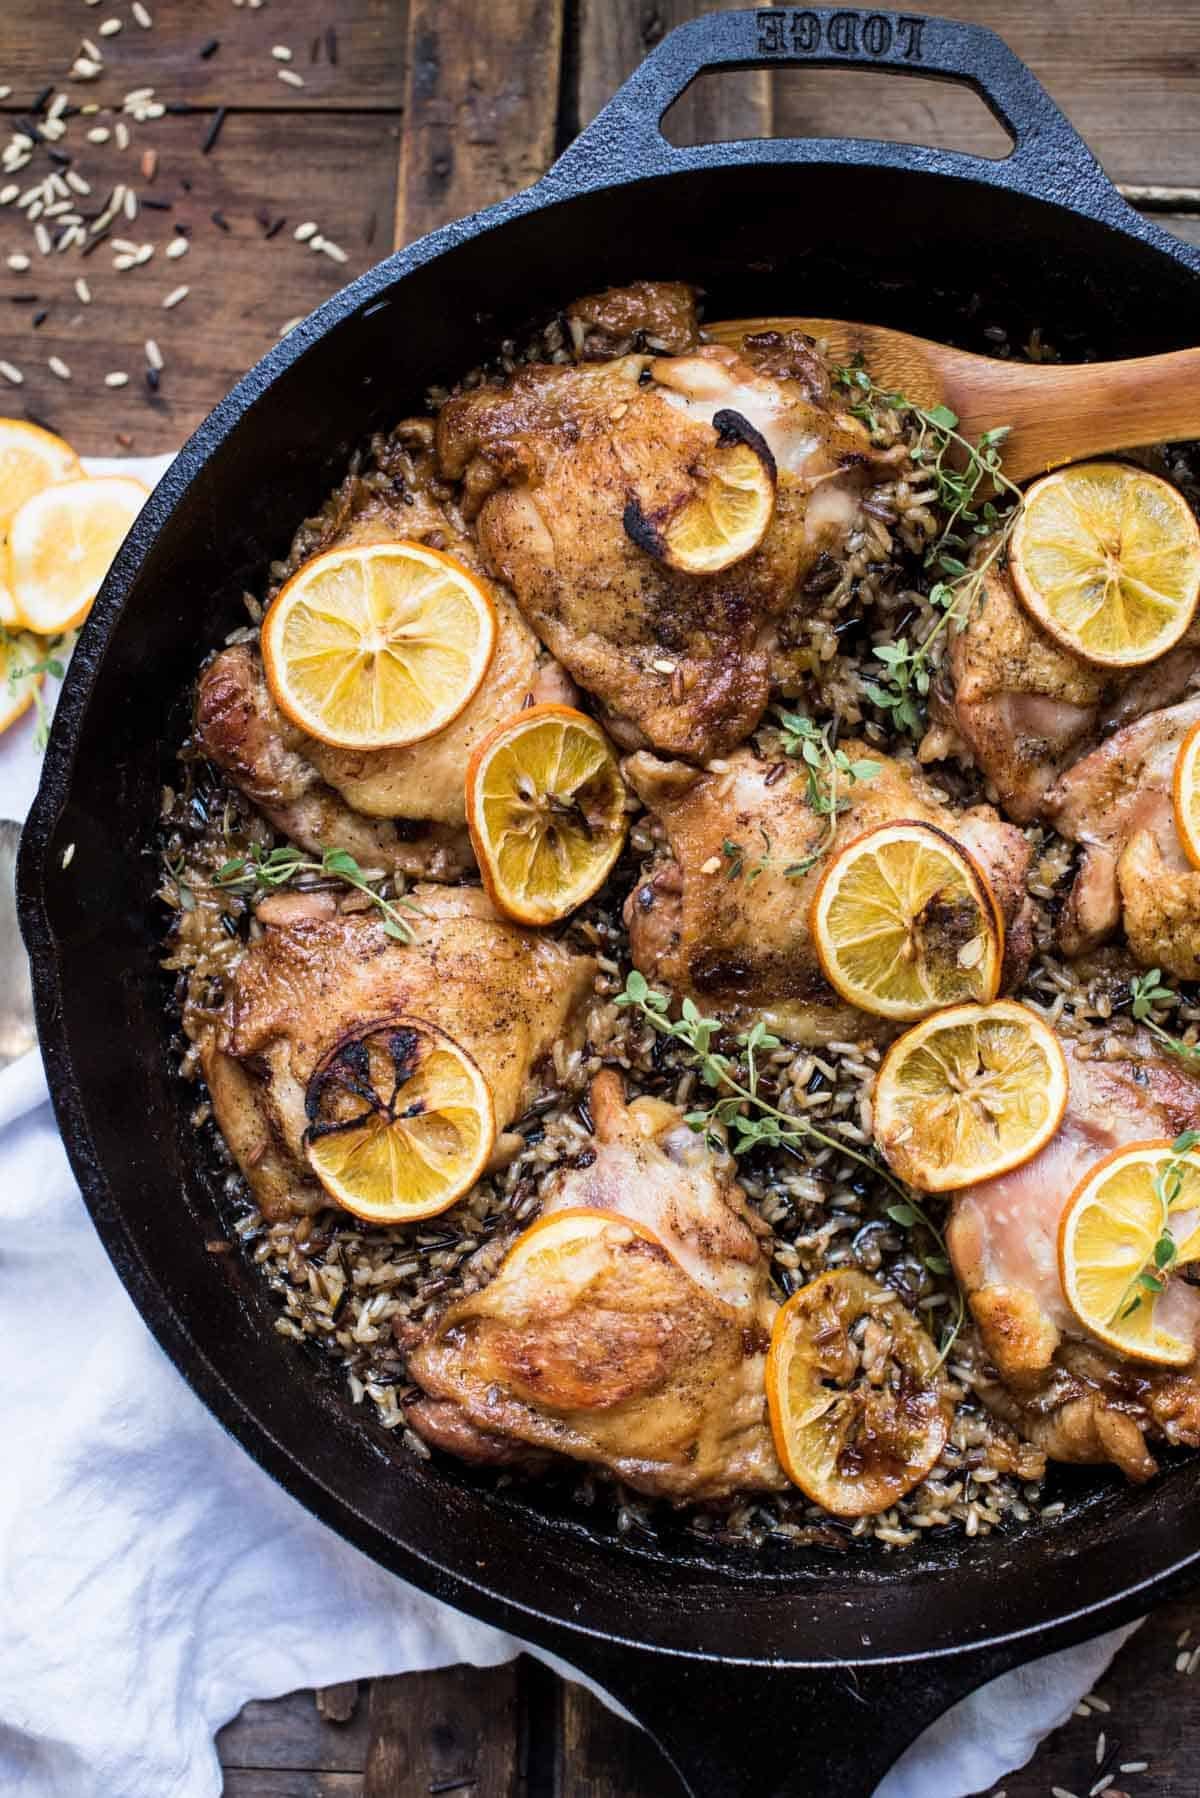 Crispy chicken thighs with lemon and wild rice in cast iron skillet